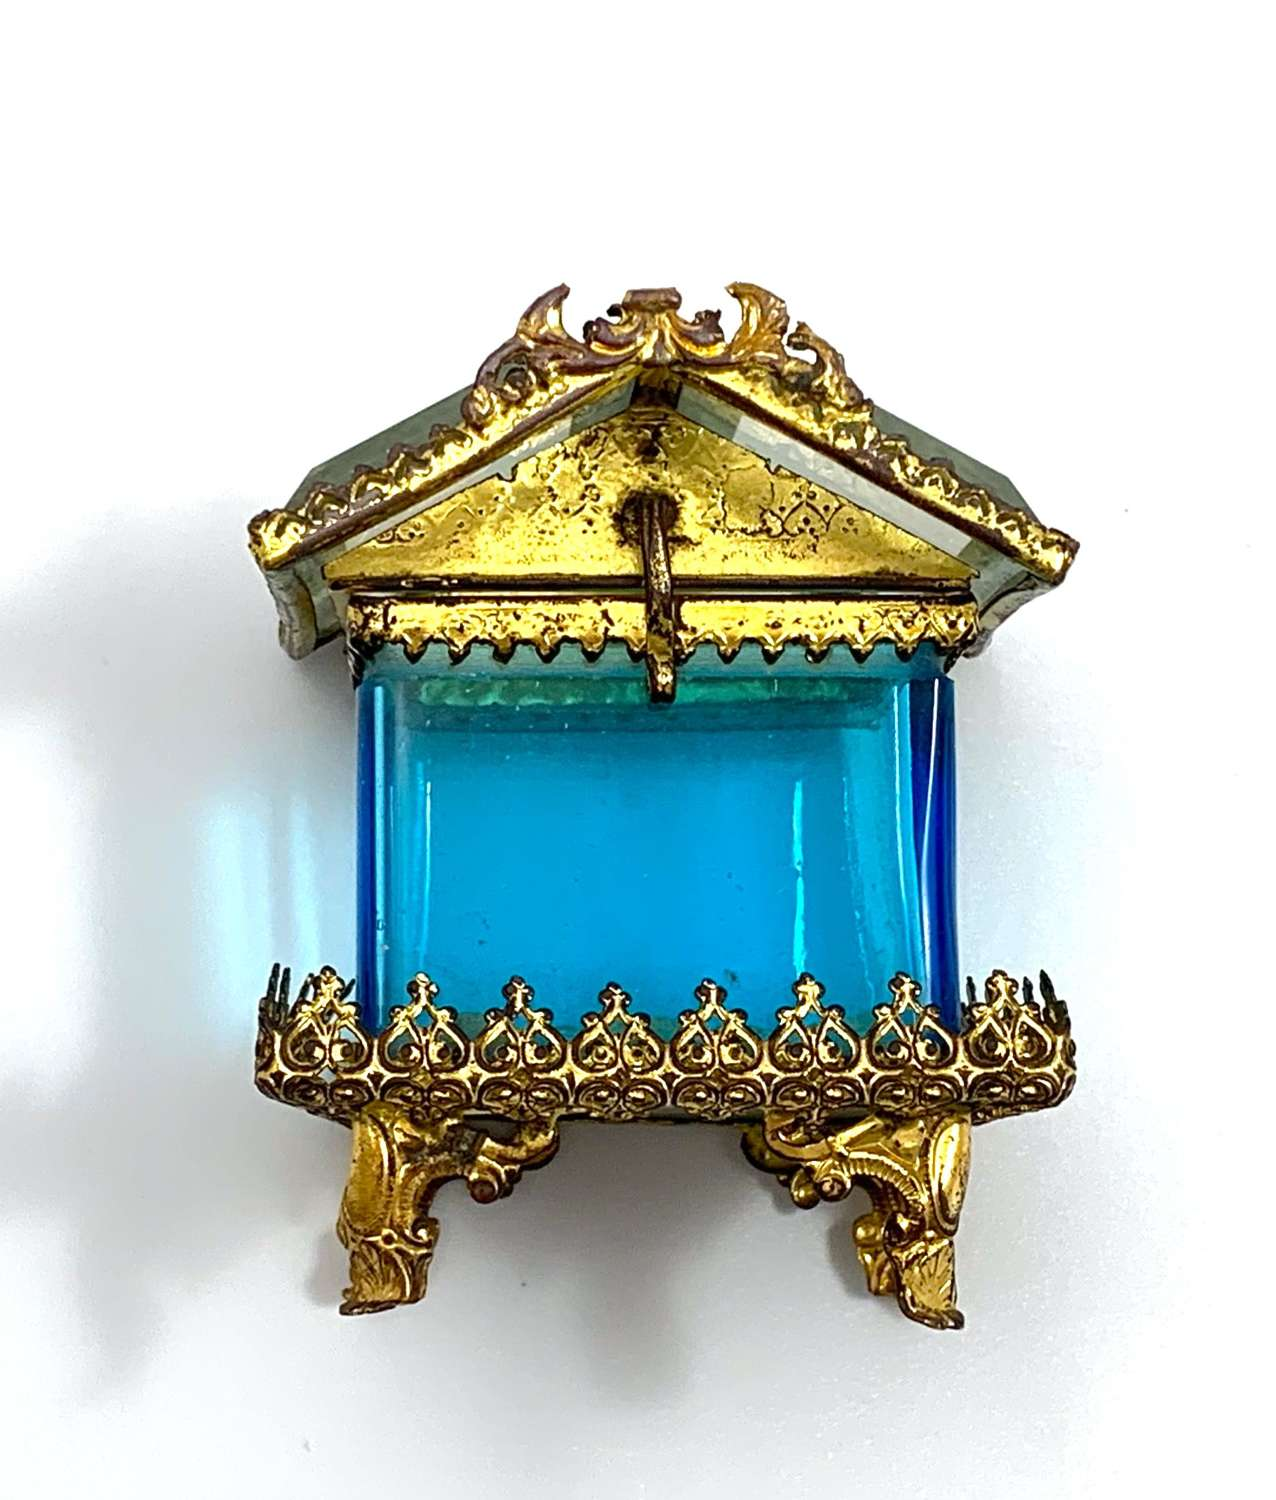 Antique French Dore Bronze Pagoda Style Casket with Turquoise Glass